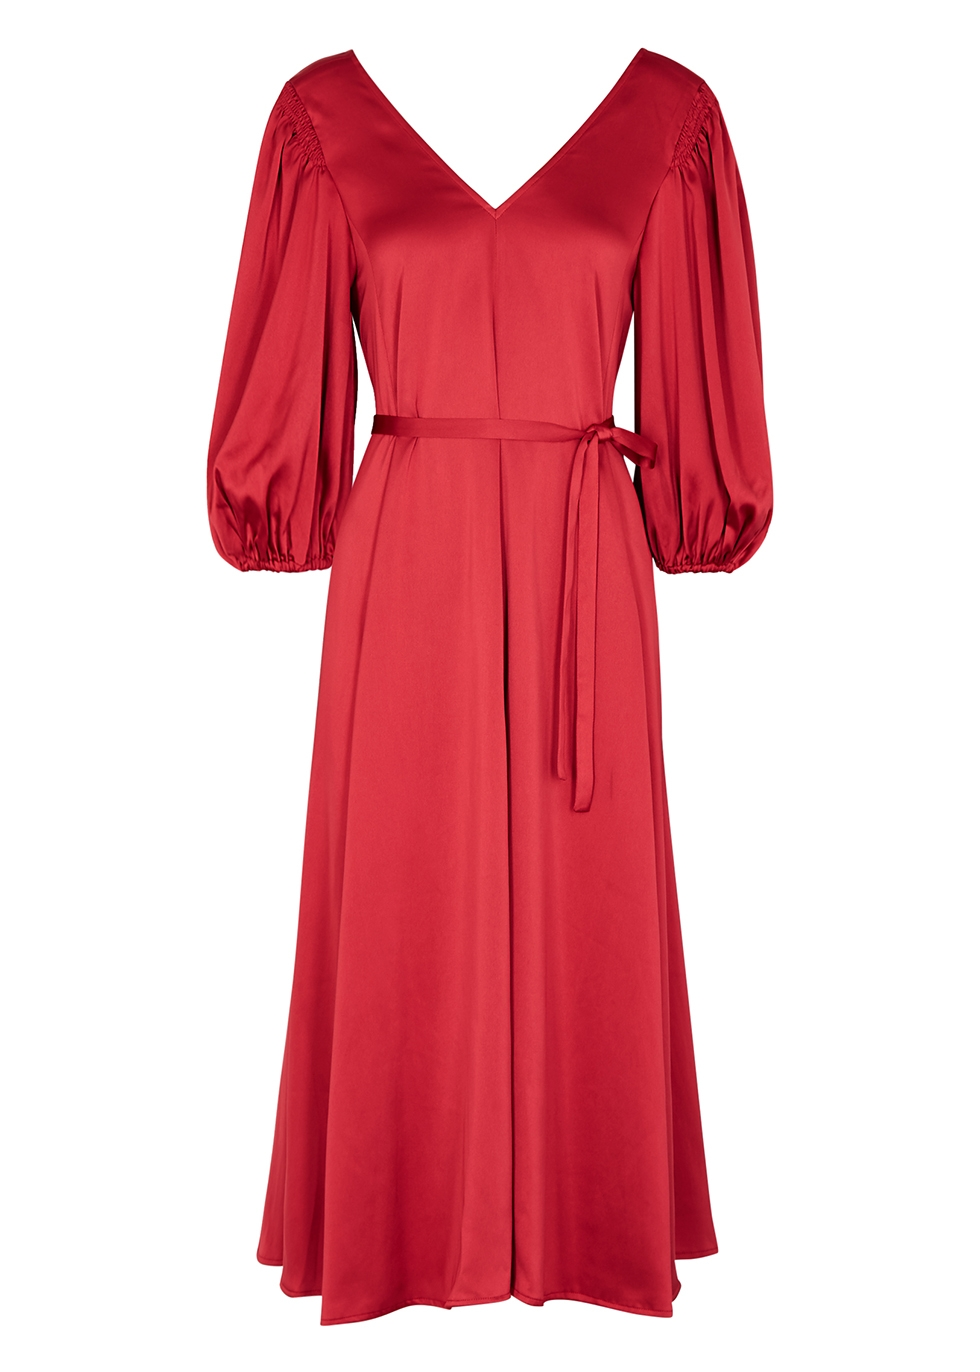 Marlen red satin midi dress